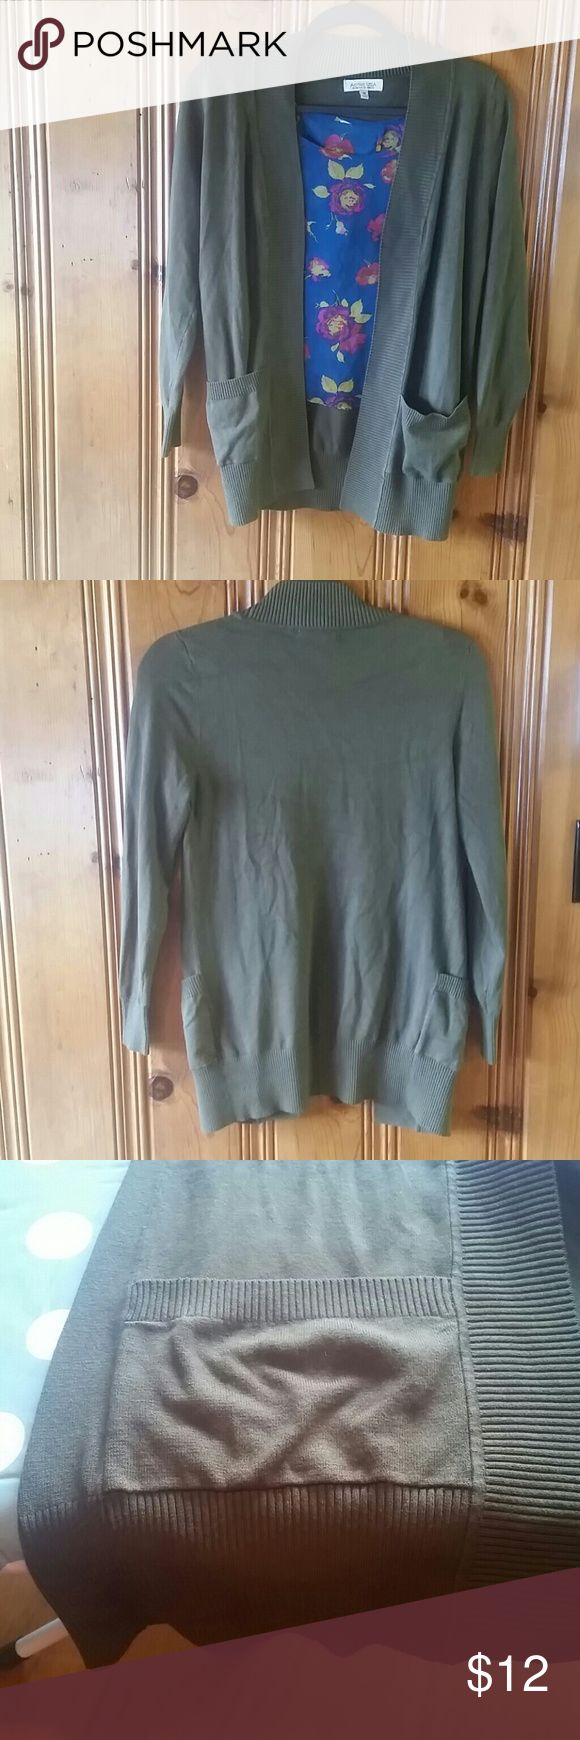 Olive Green Cardigan Cozy sweater with cute side pockets. In great condition, only worn a few times. Size MEDIUM. Active USA Sweaters Cardigans